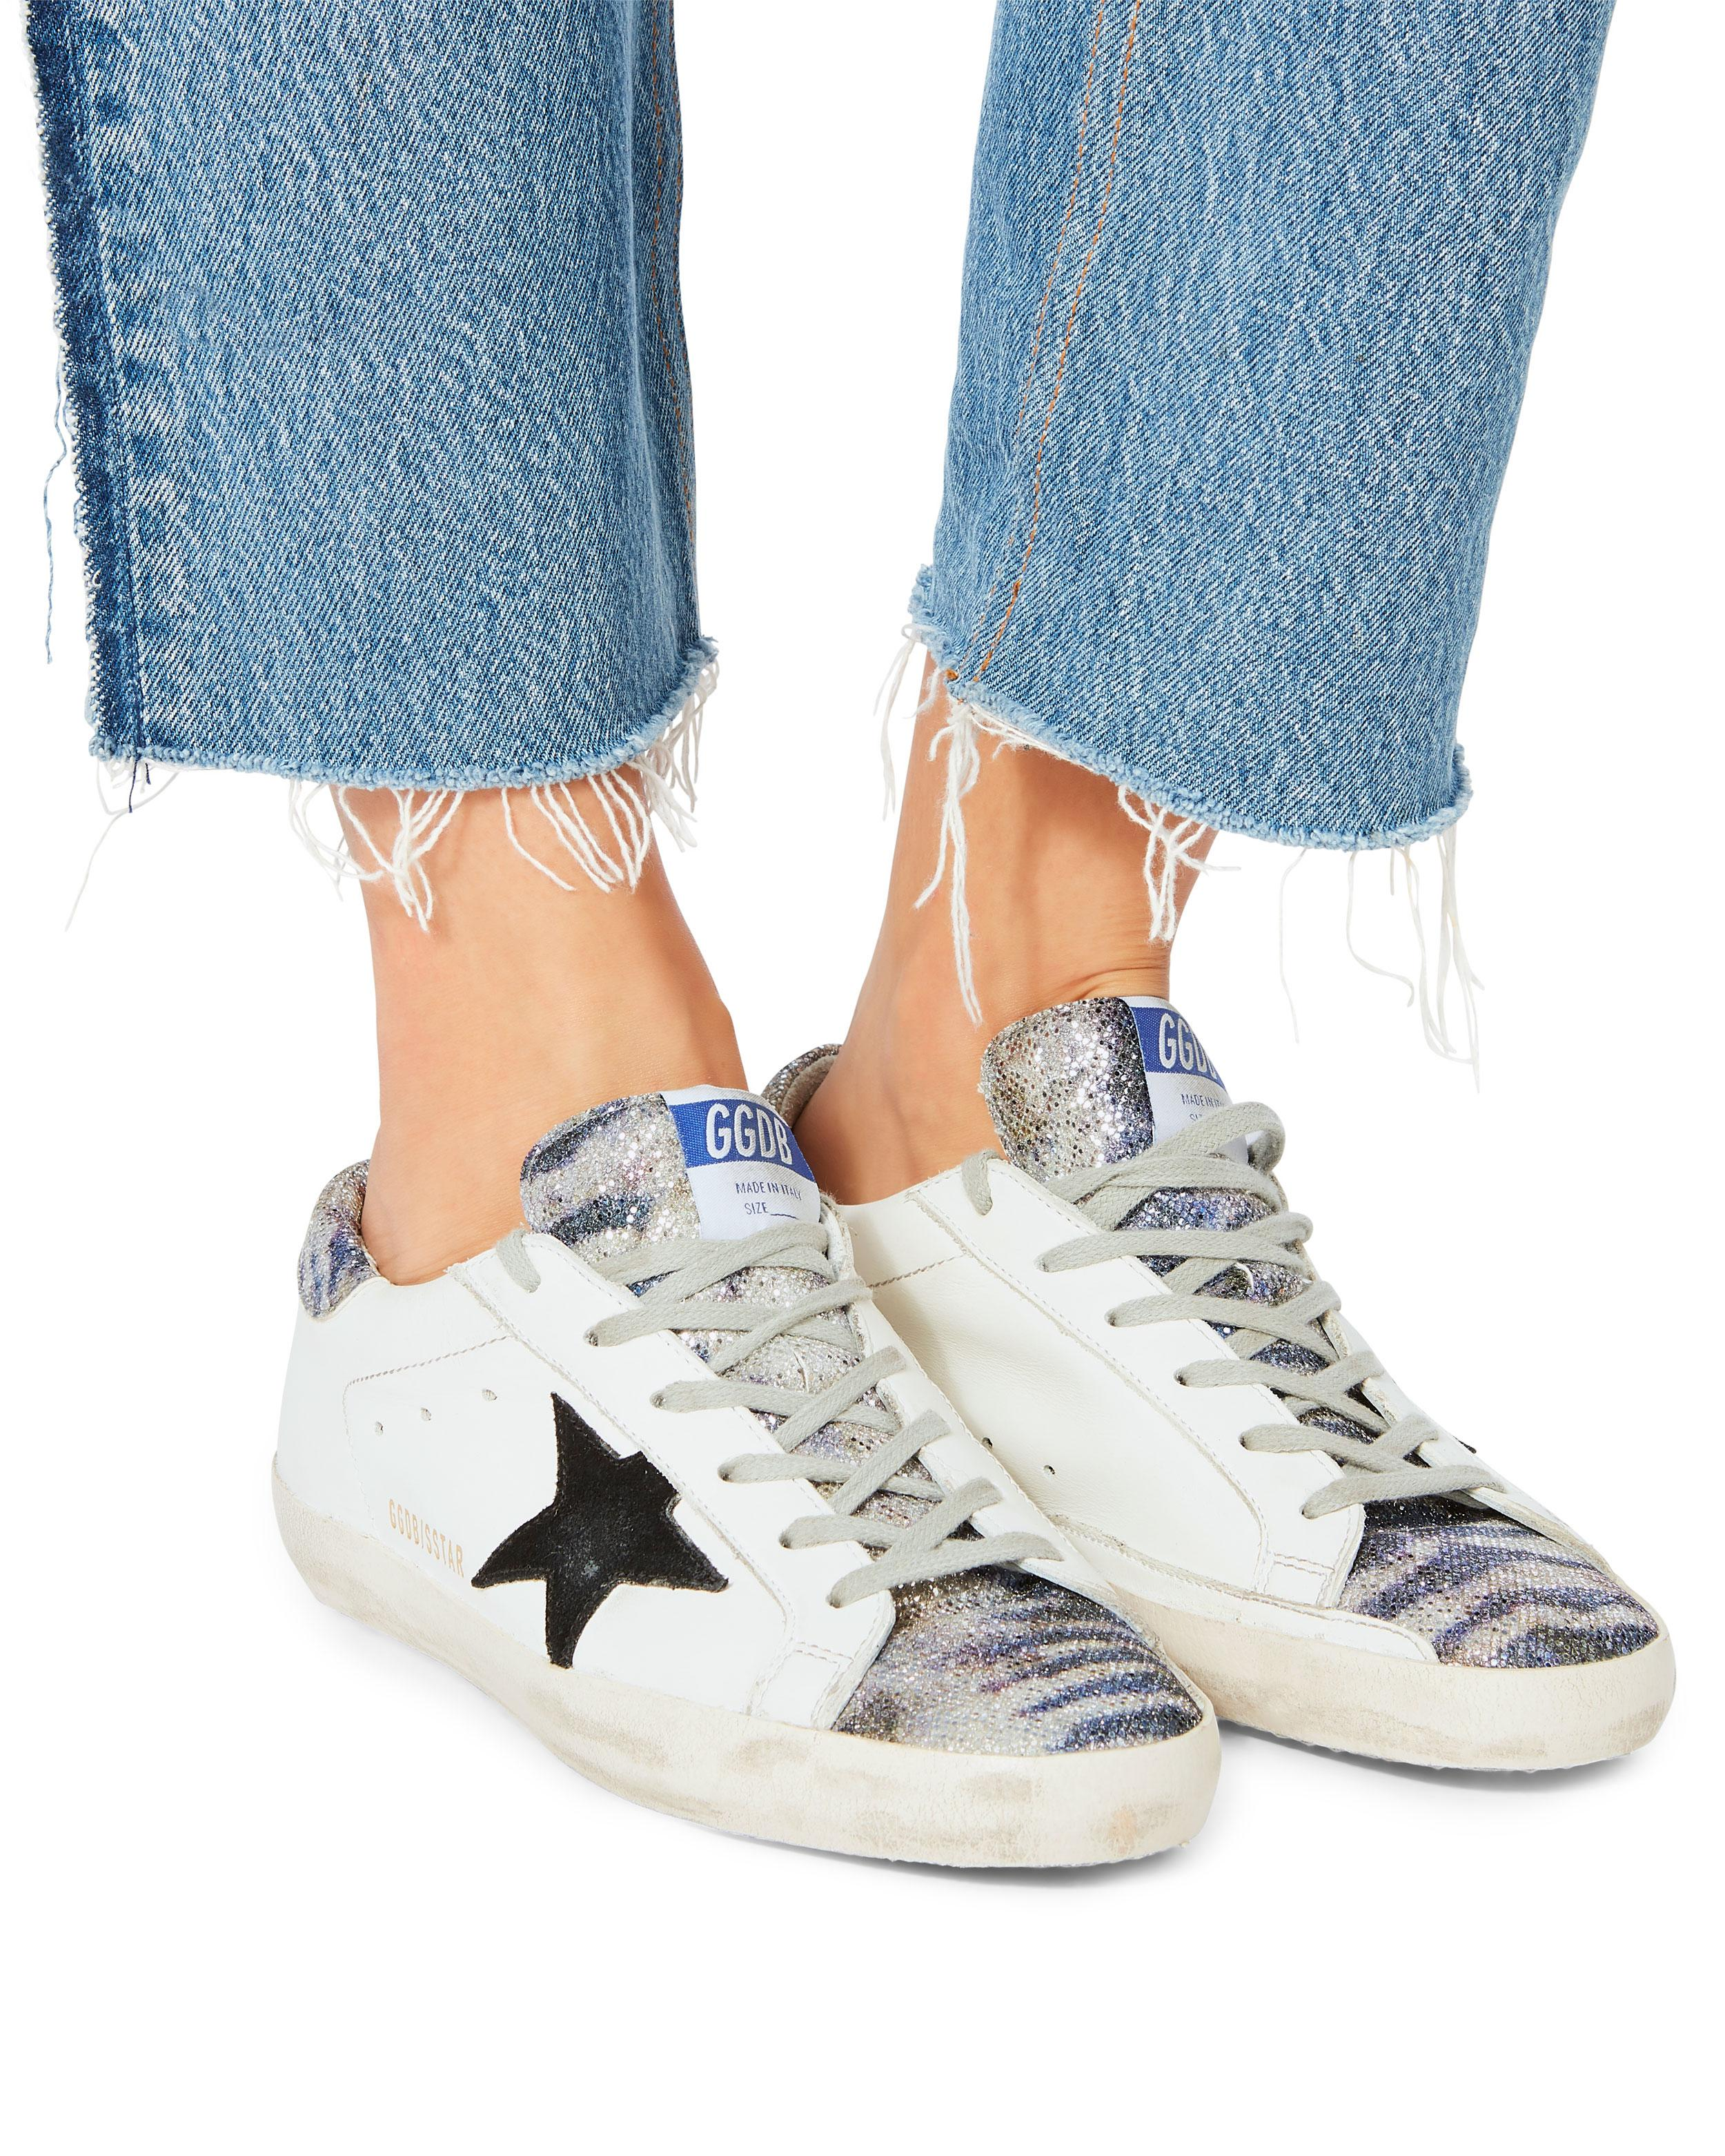 022485d173a Golden Goose Deluxe Brand - Superstar Zebra Glitter White Leather Sneakers  - Lyst